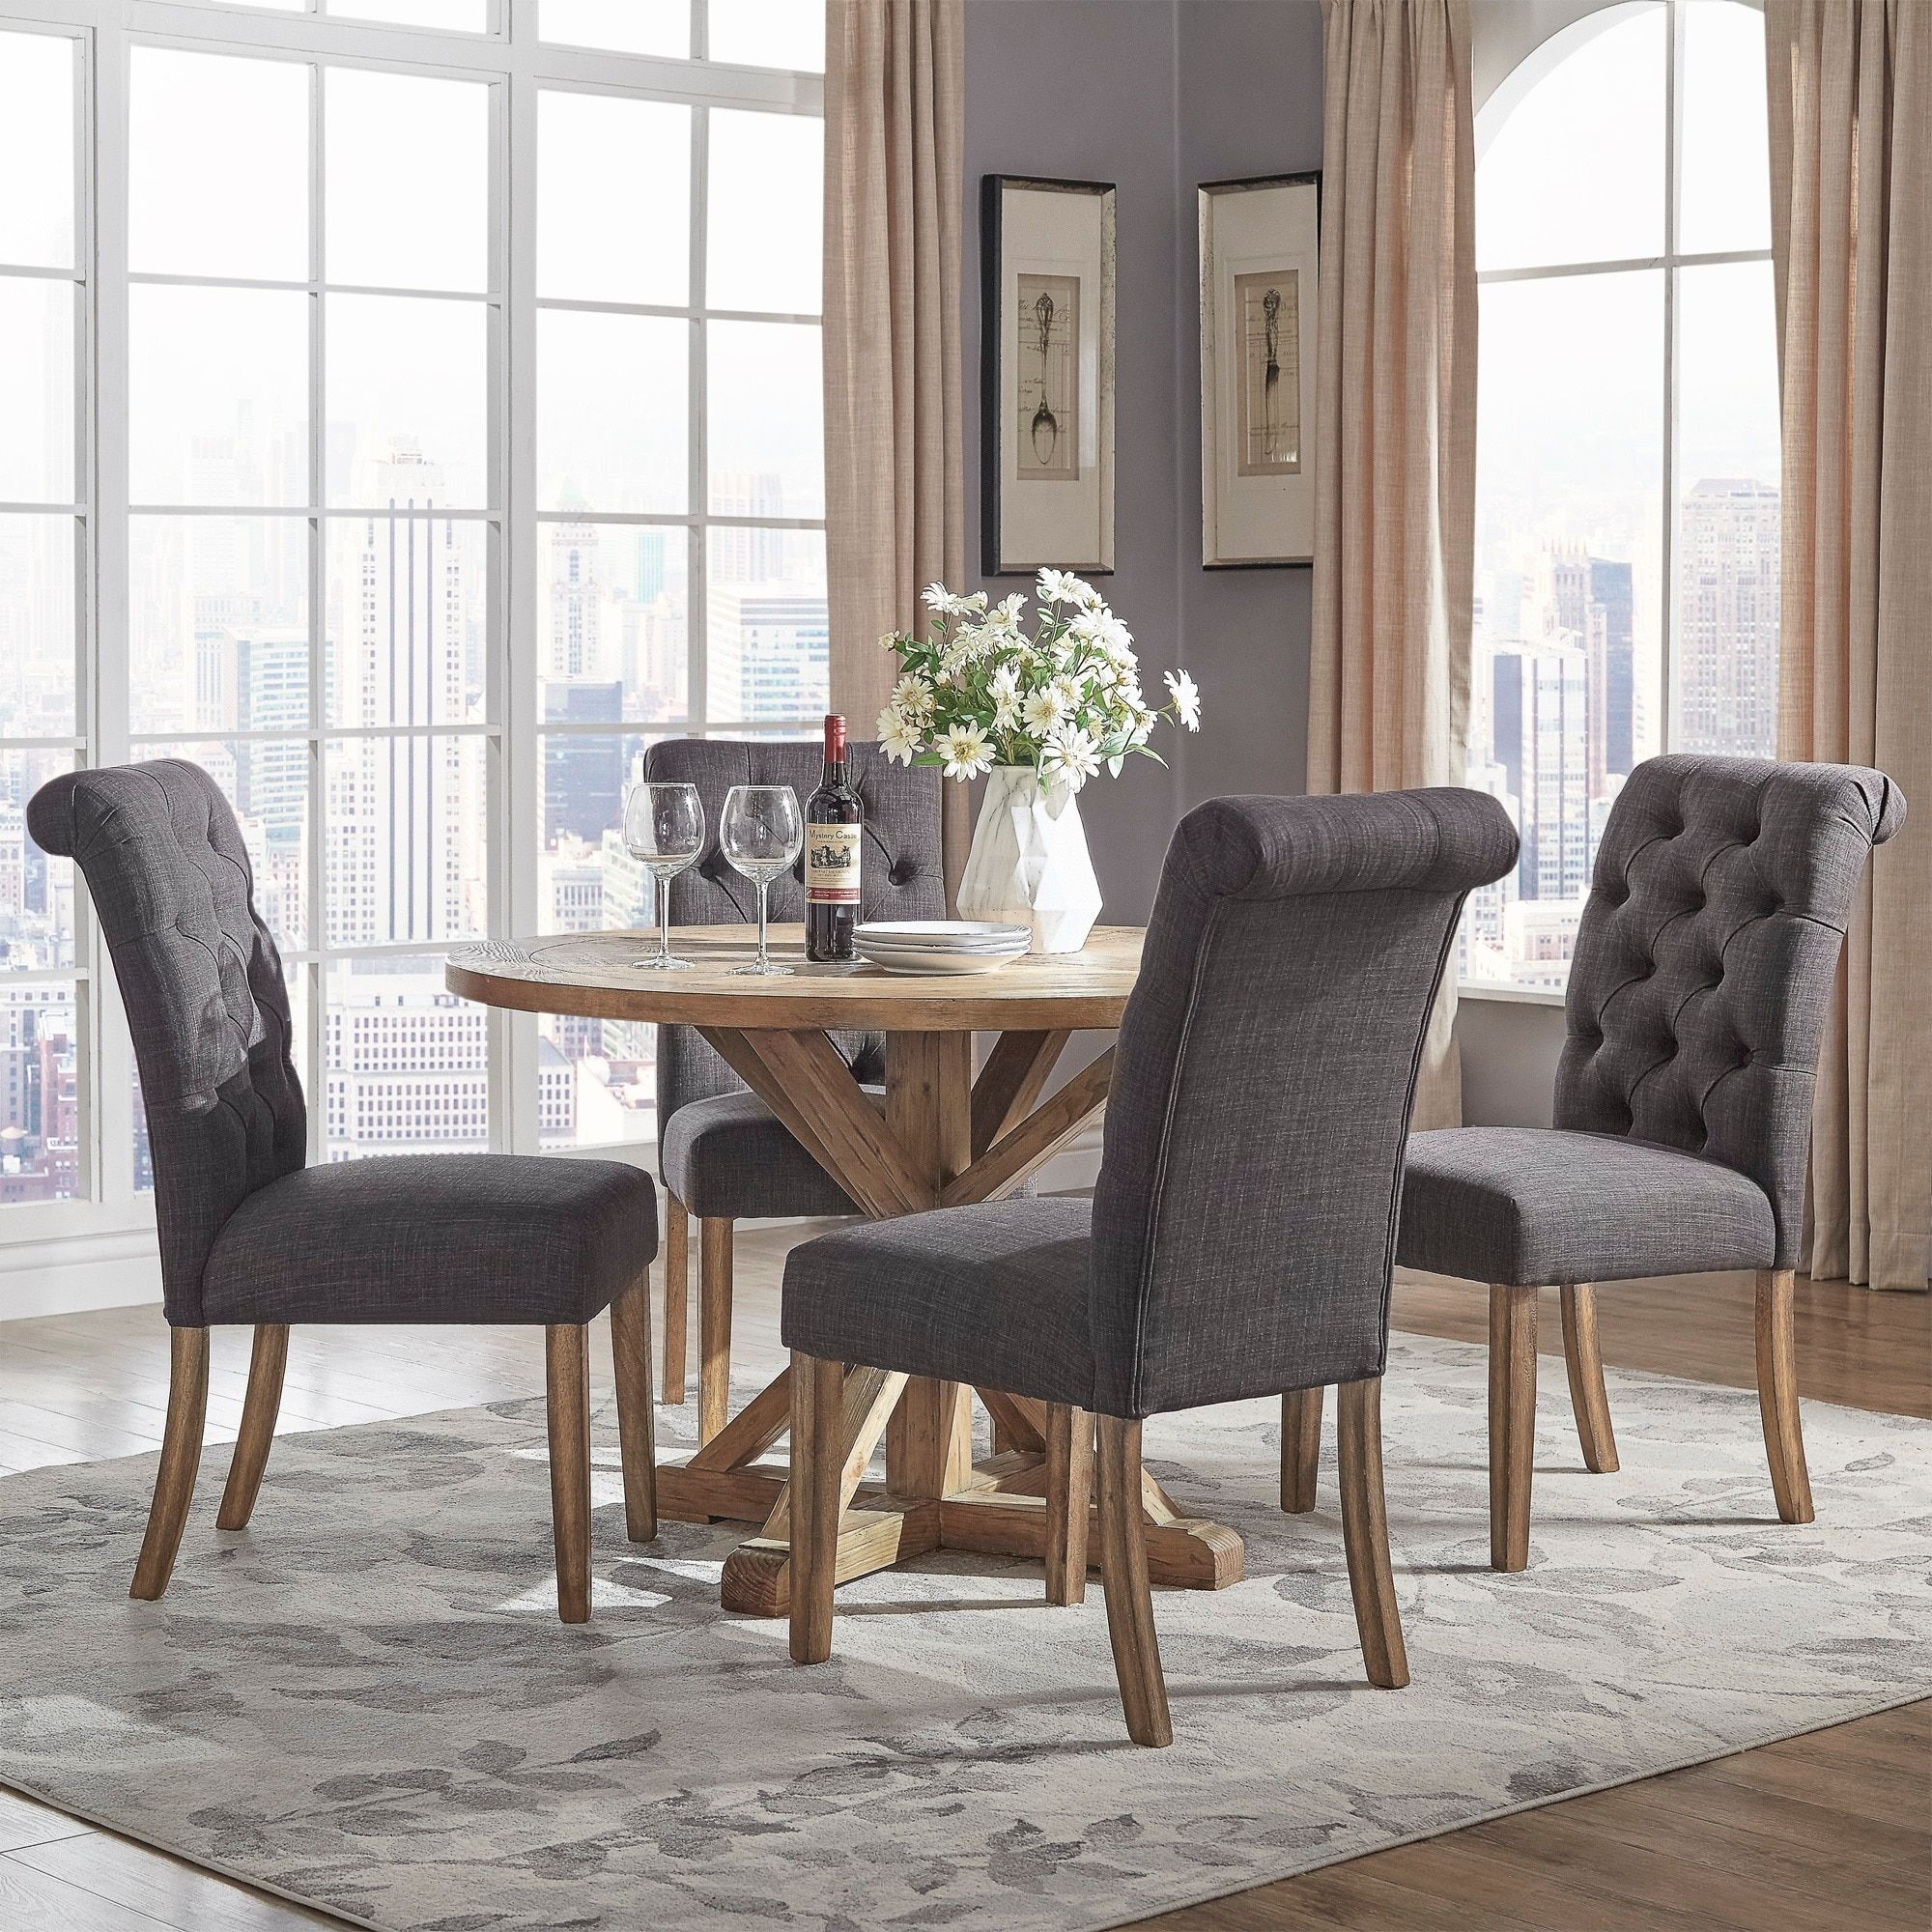 Benchwright Rustic X-base 48-inch Round Dining Table Set by iNSPIRE Q Artisan (48-Inch Round Table) Brown & Benchwright Rustic X-base 48-inch Round Dining Table Set by iNSPIRE ...